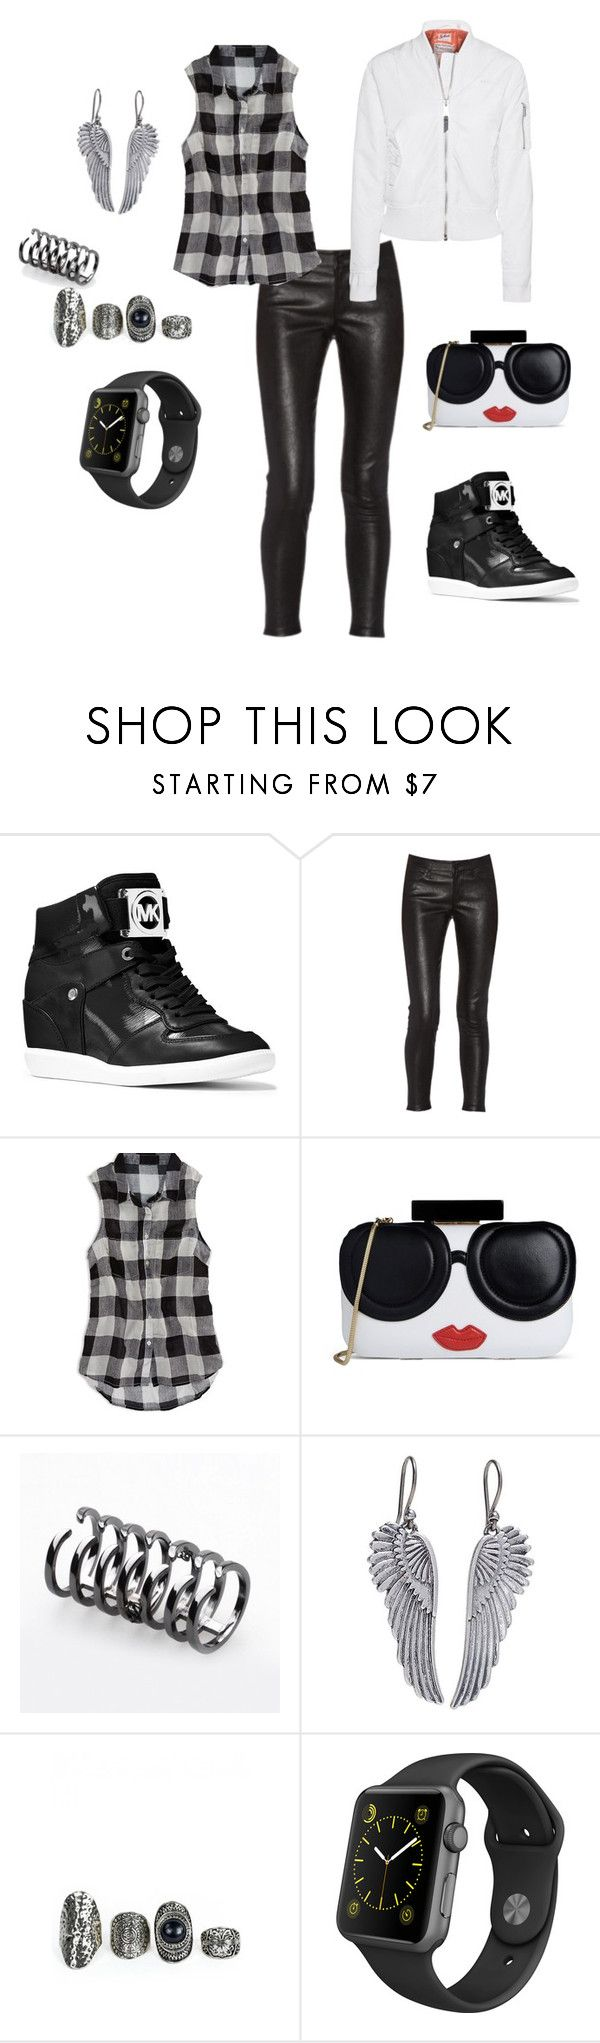 Porque hoje é sexta-feira. by simone-silva-s2 on Polyvore featuring moda, American Eagle Outfitters, Schott NYC, MICHAEL Michael Kors, Alice + Olivia, Apple, Lucky Brand and Federica Tosi